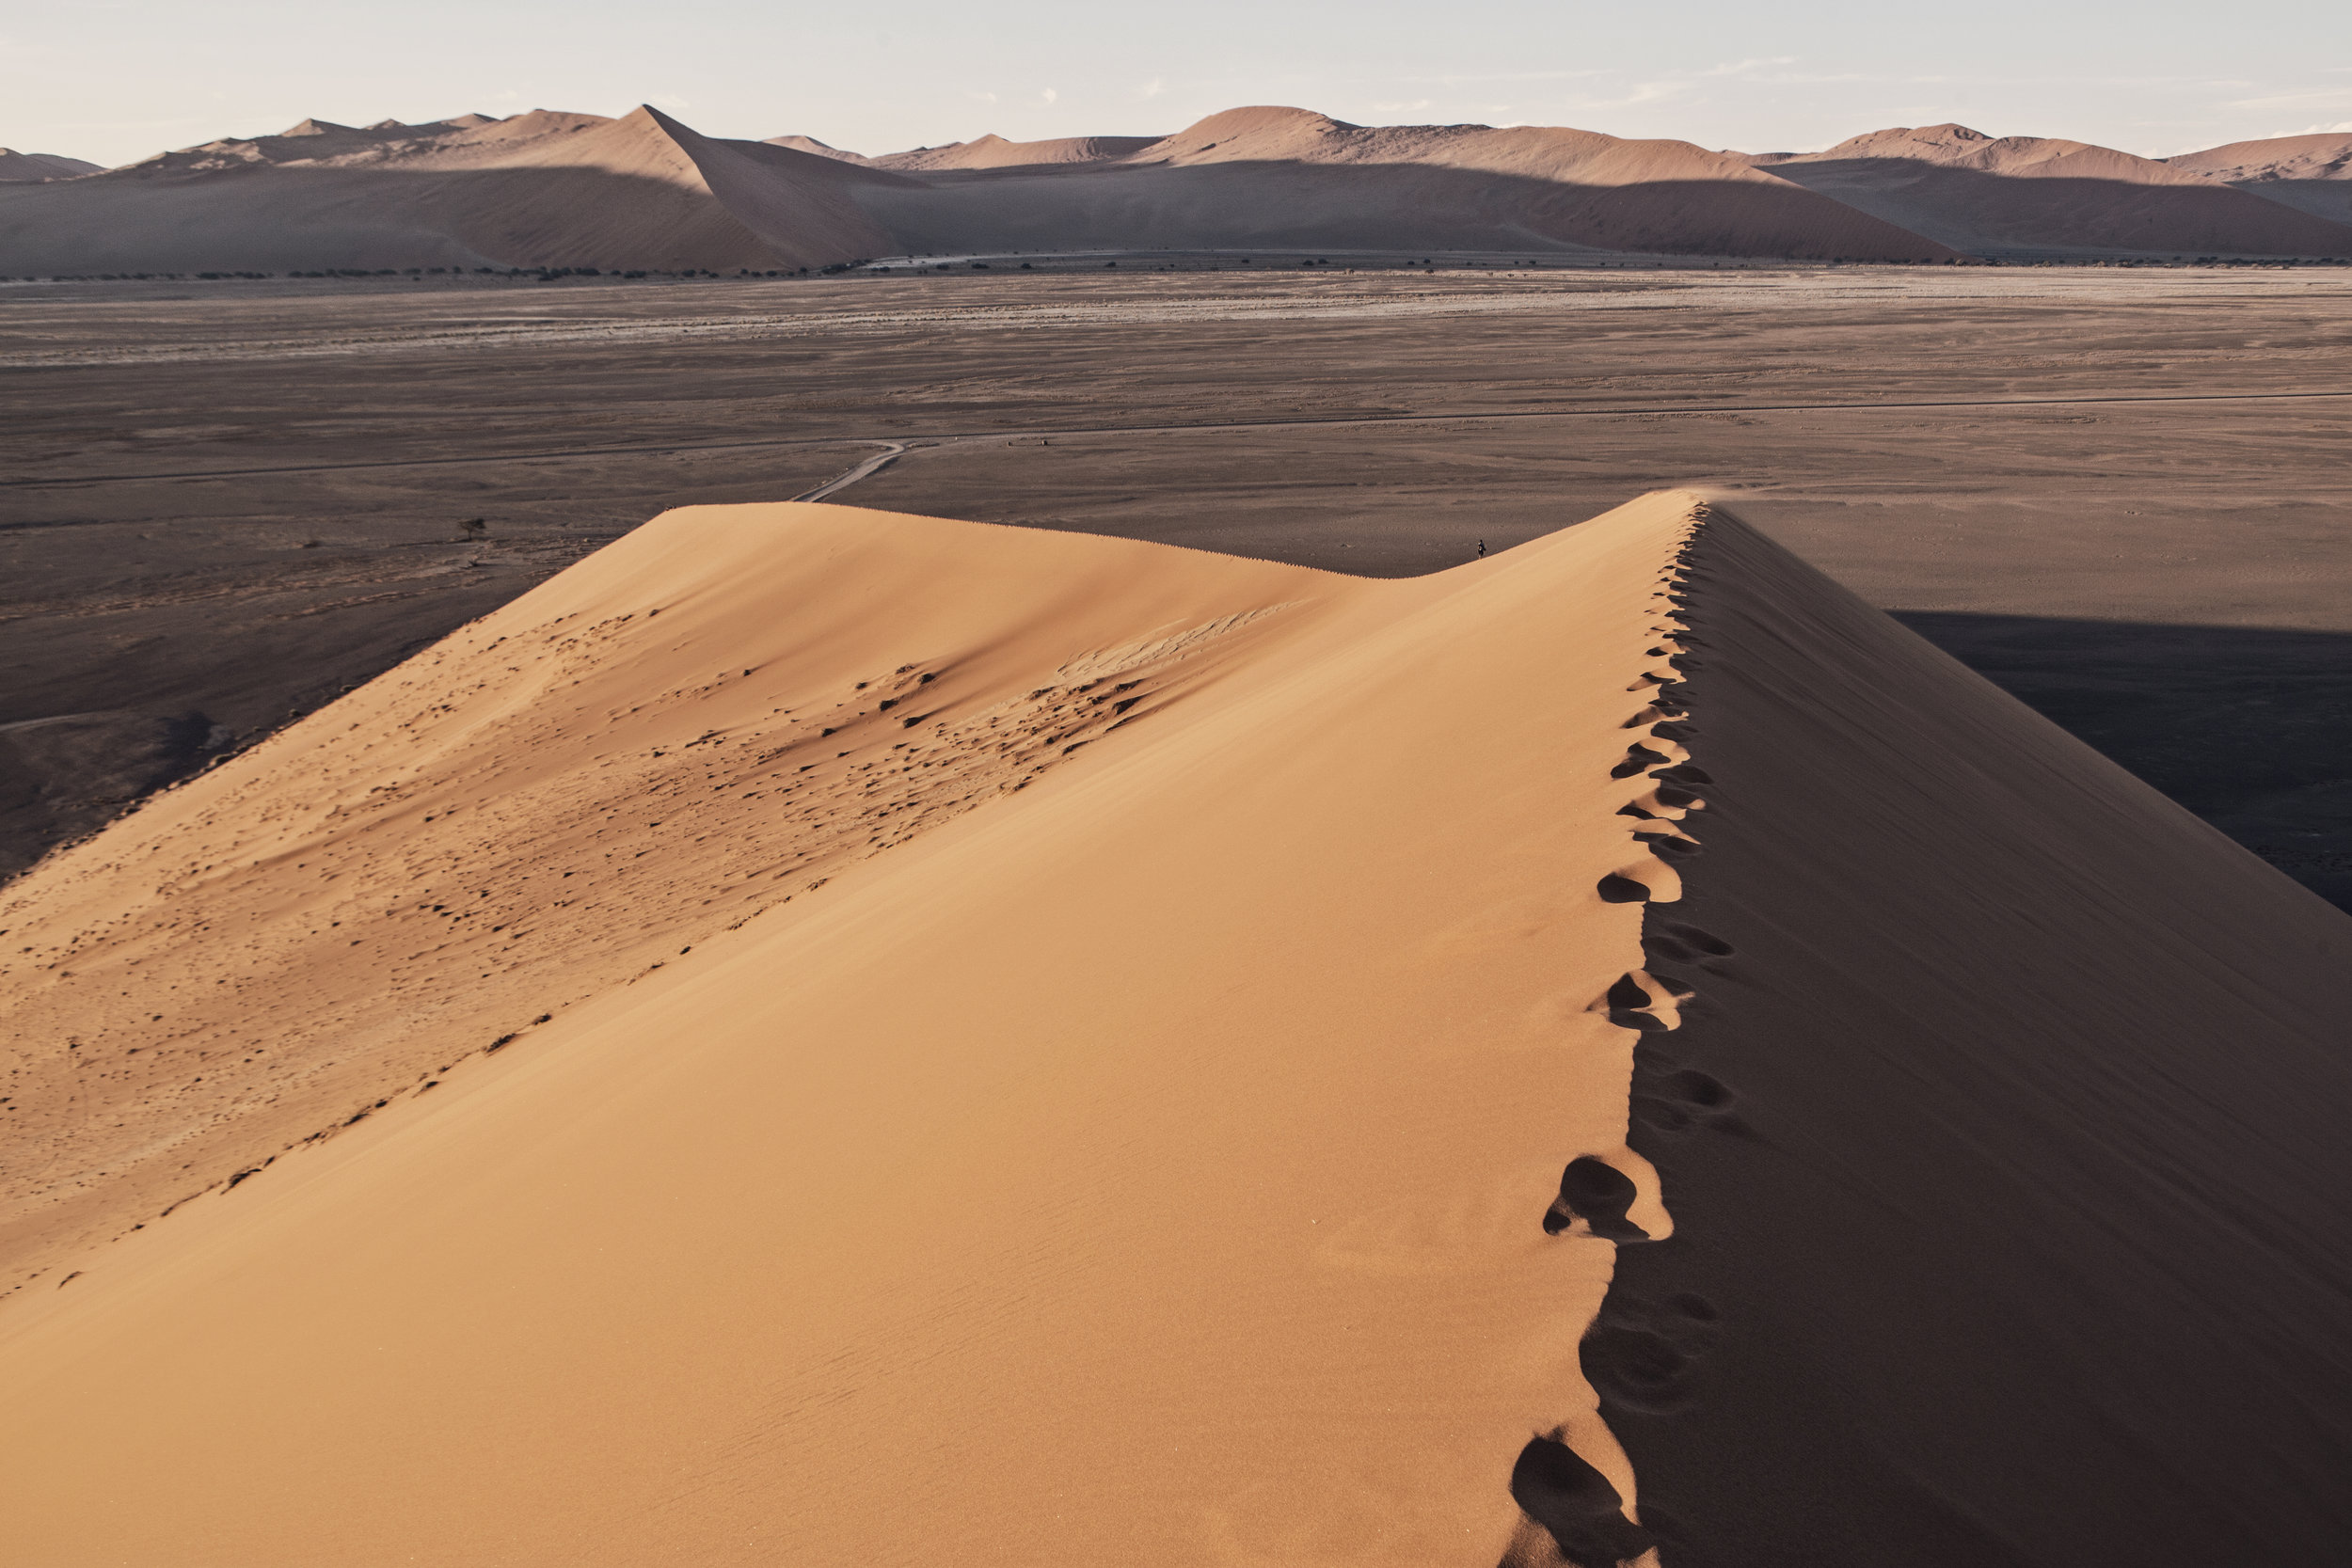 The view from one of the tallest sand dunes on Earth, Namibia.